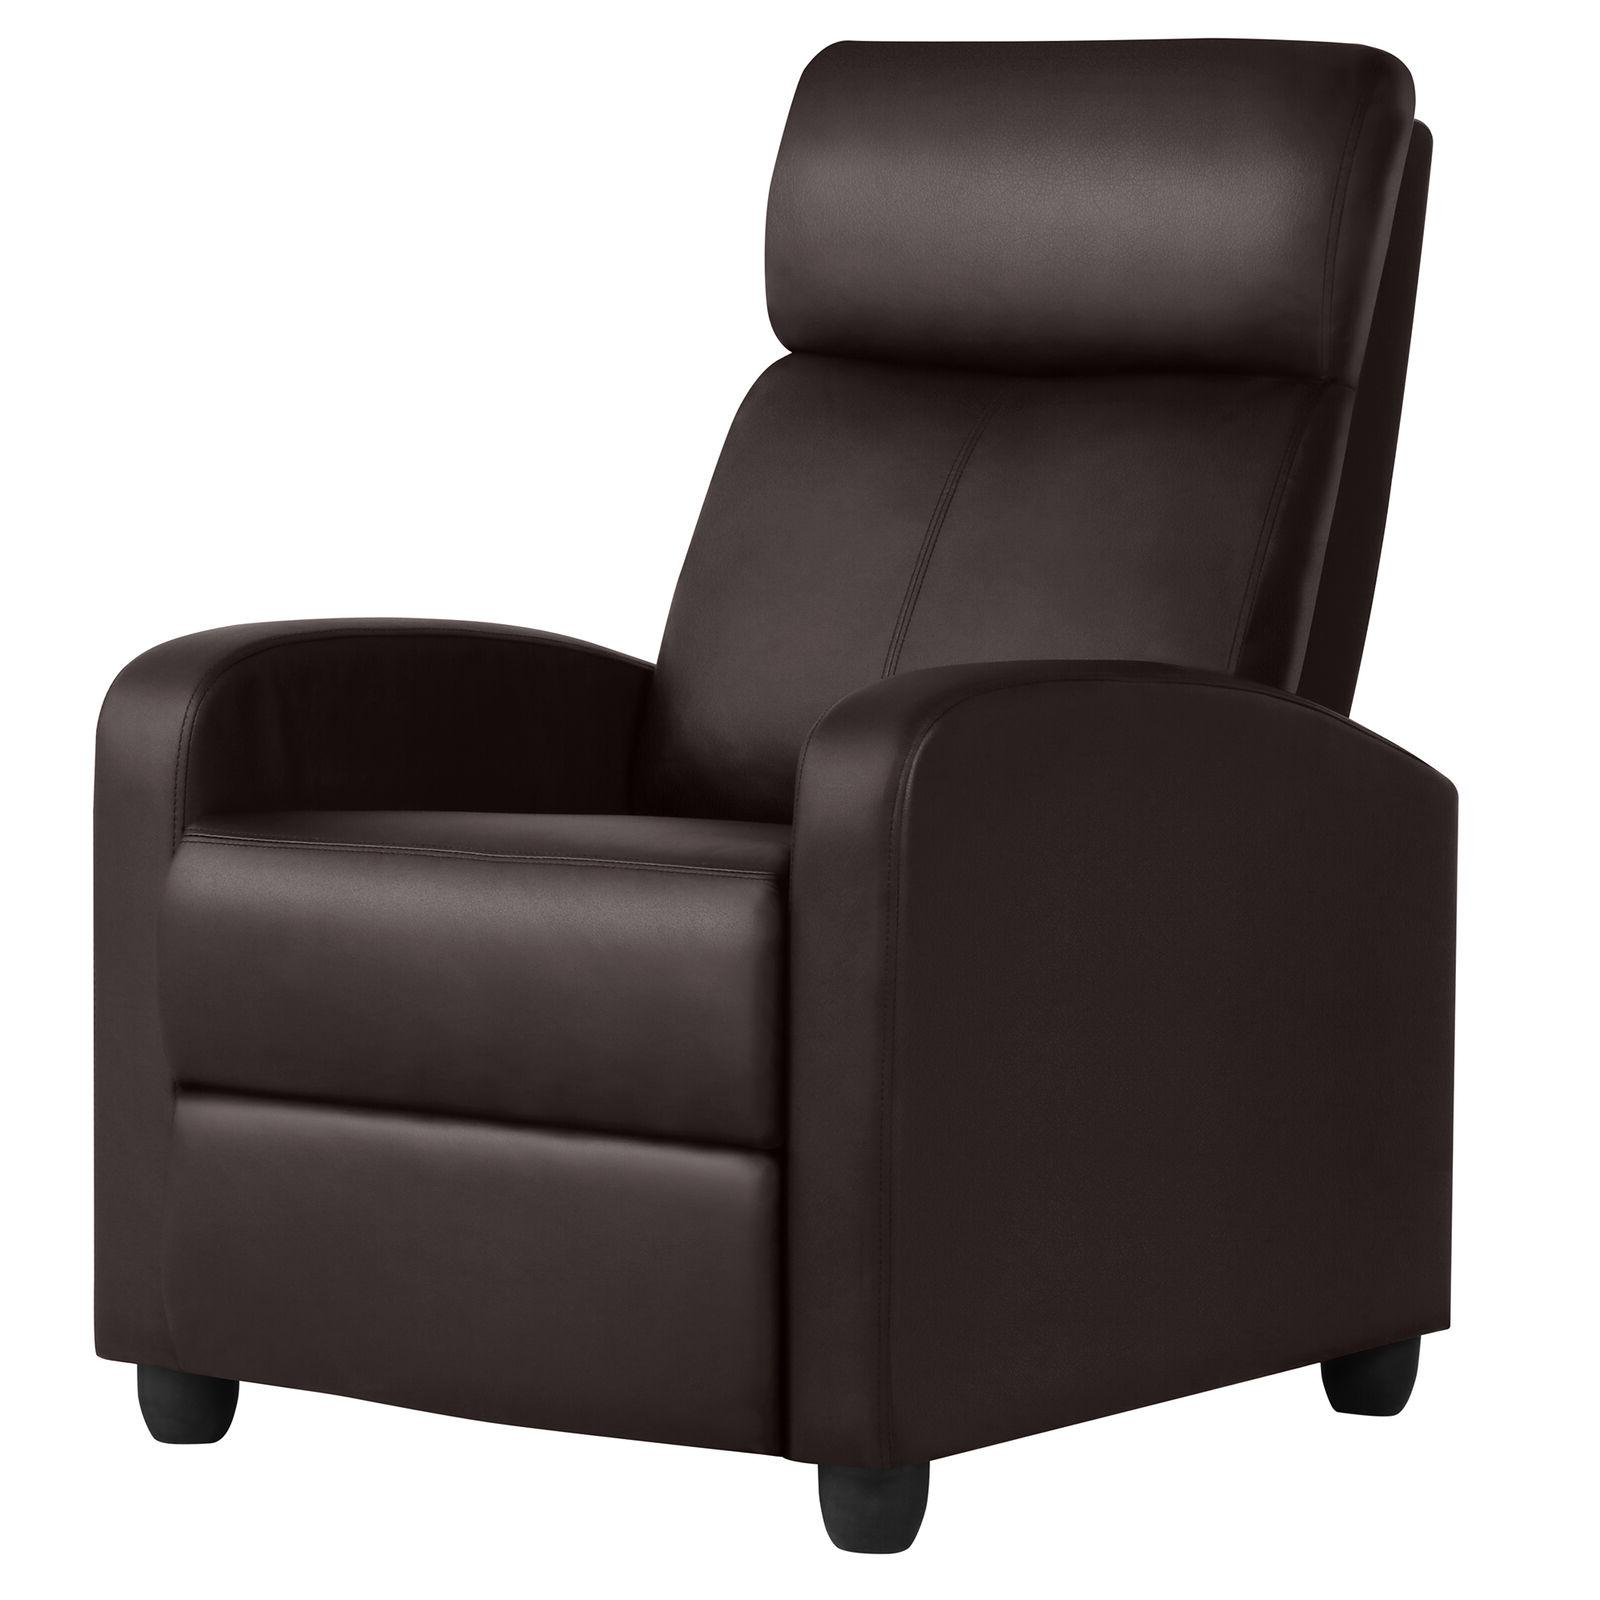 pu leather recliner chair living room single